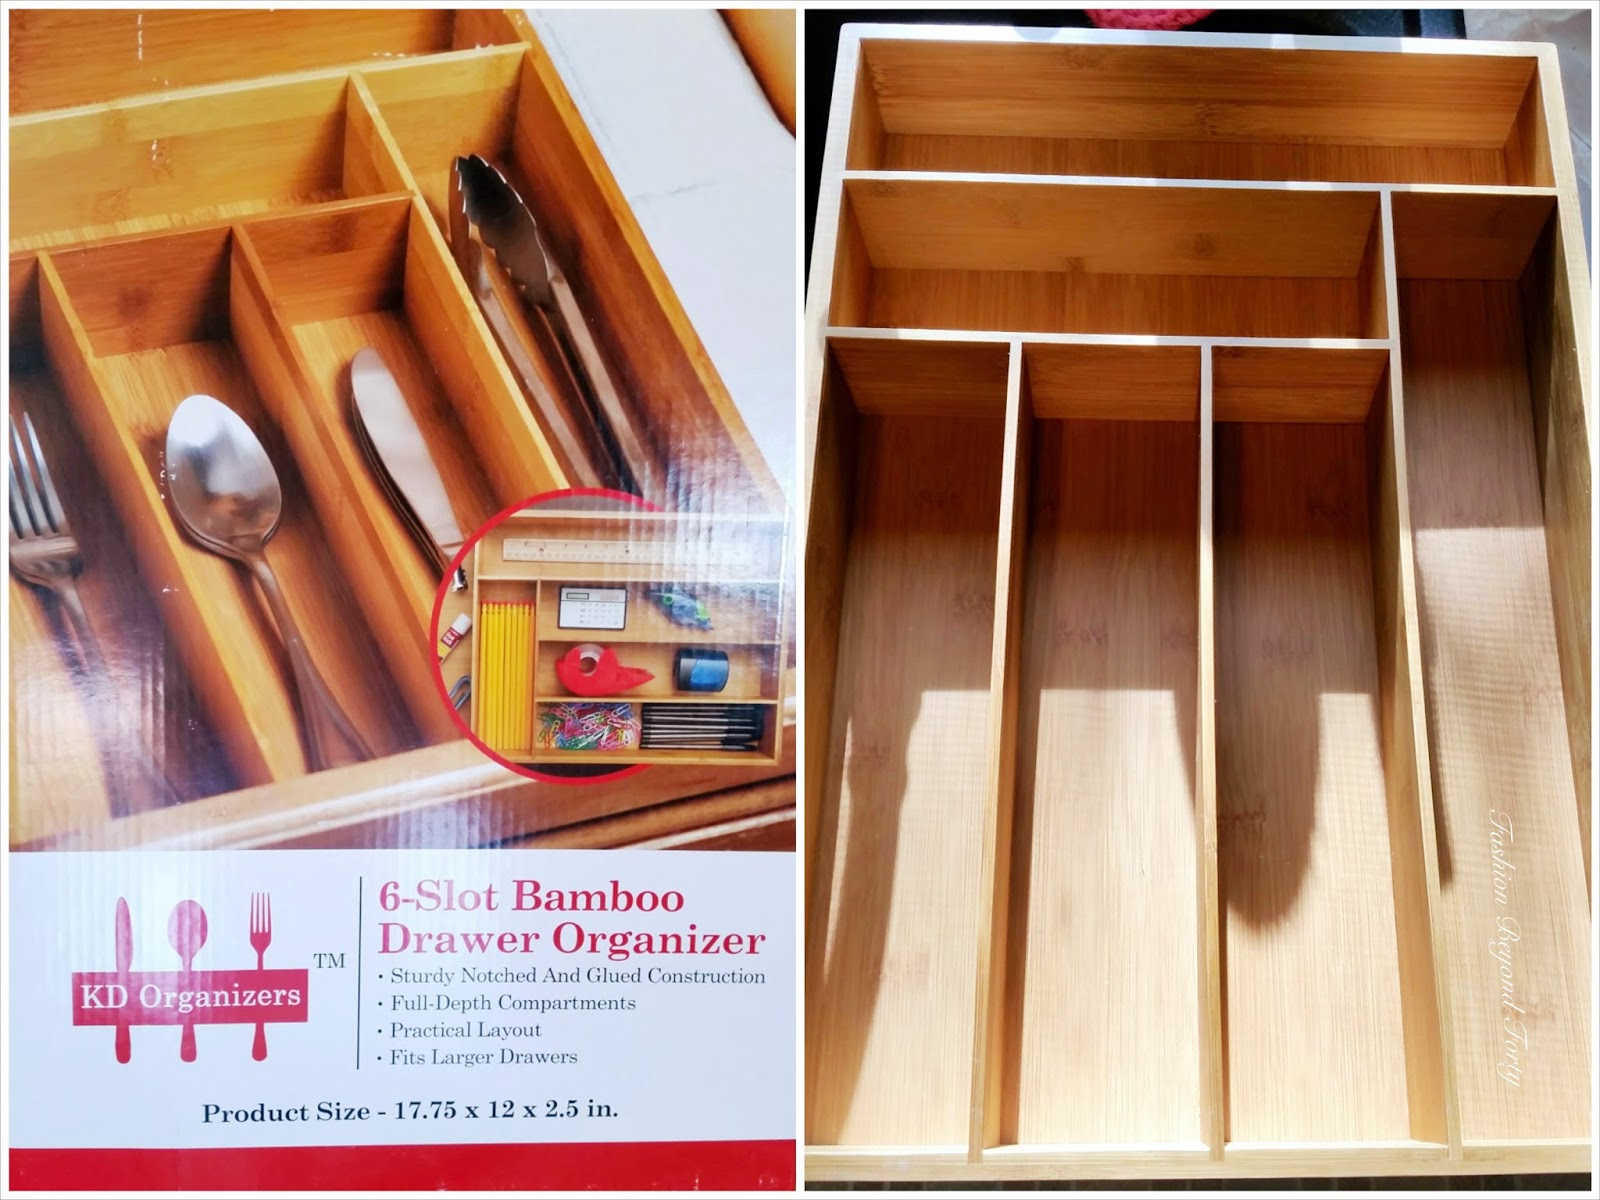 Fashionable Drawer Organizers? Indeed! KD Organizers